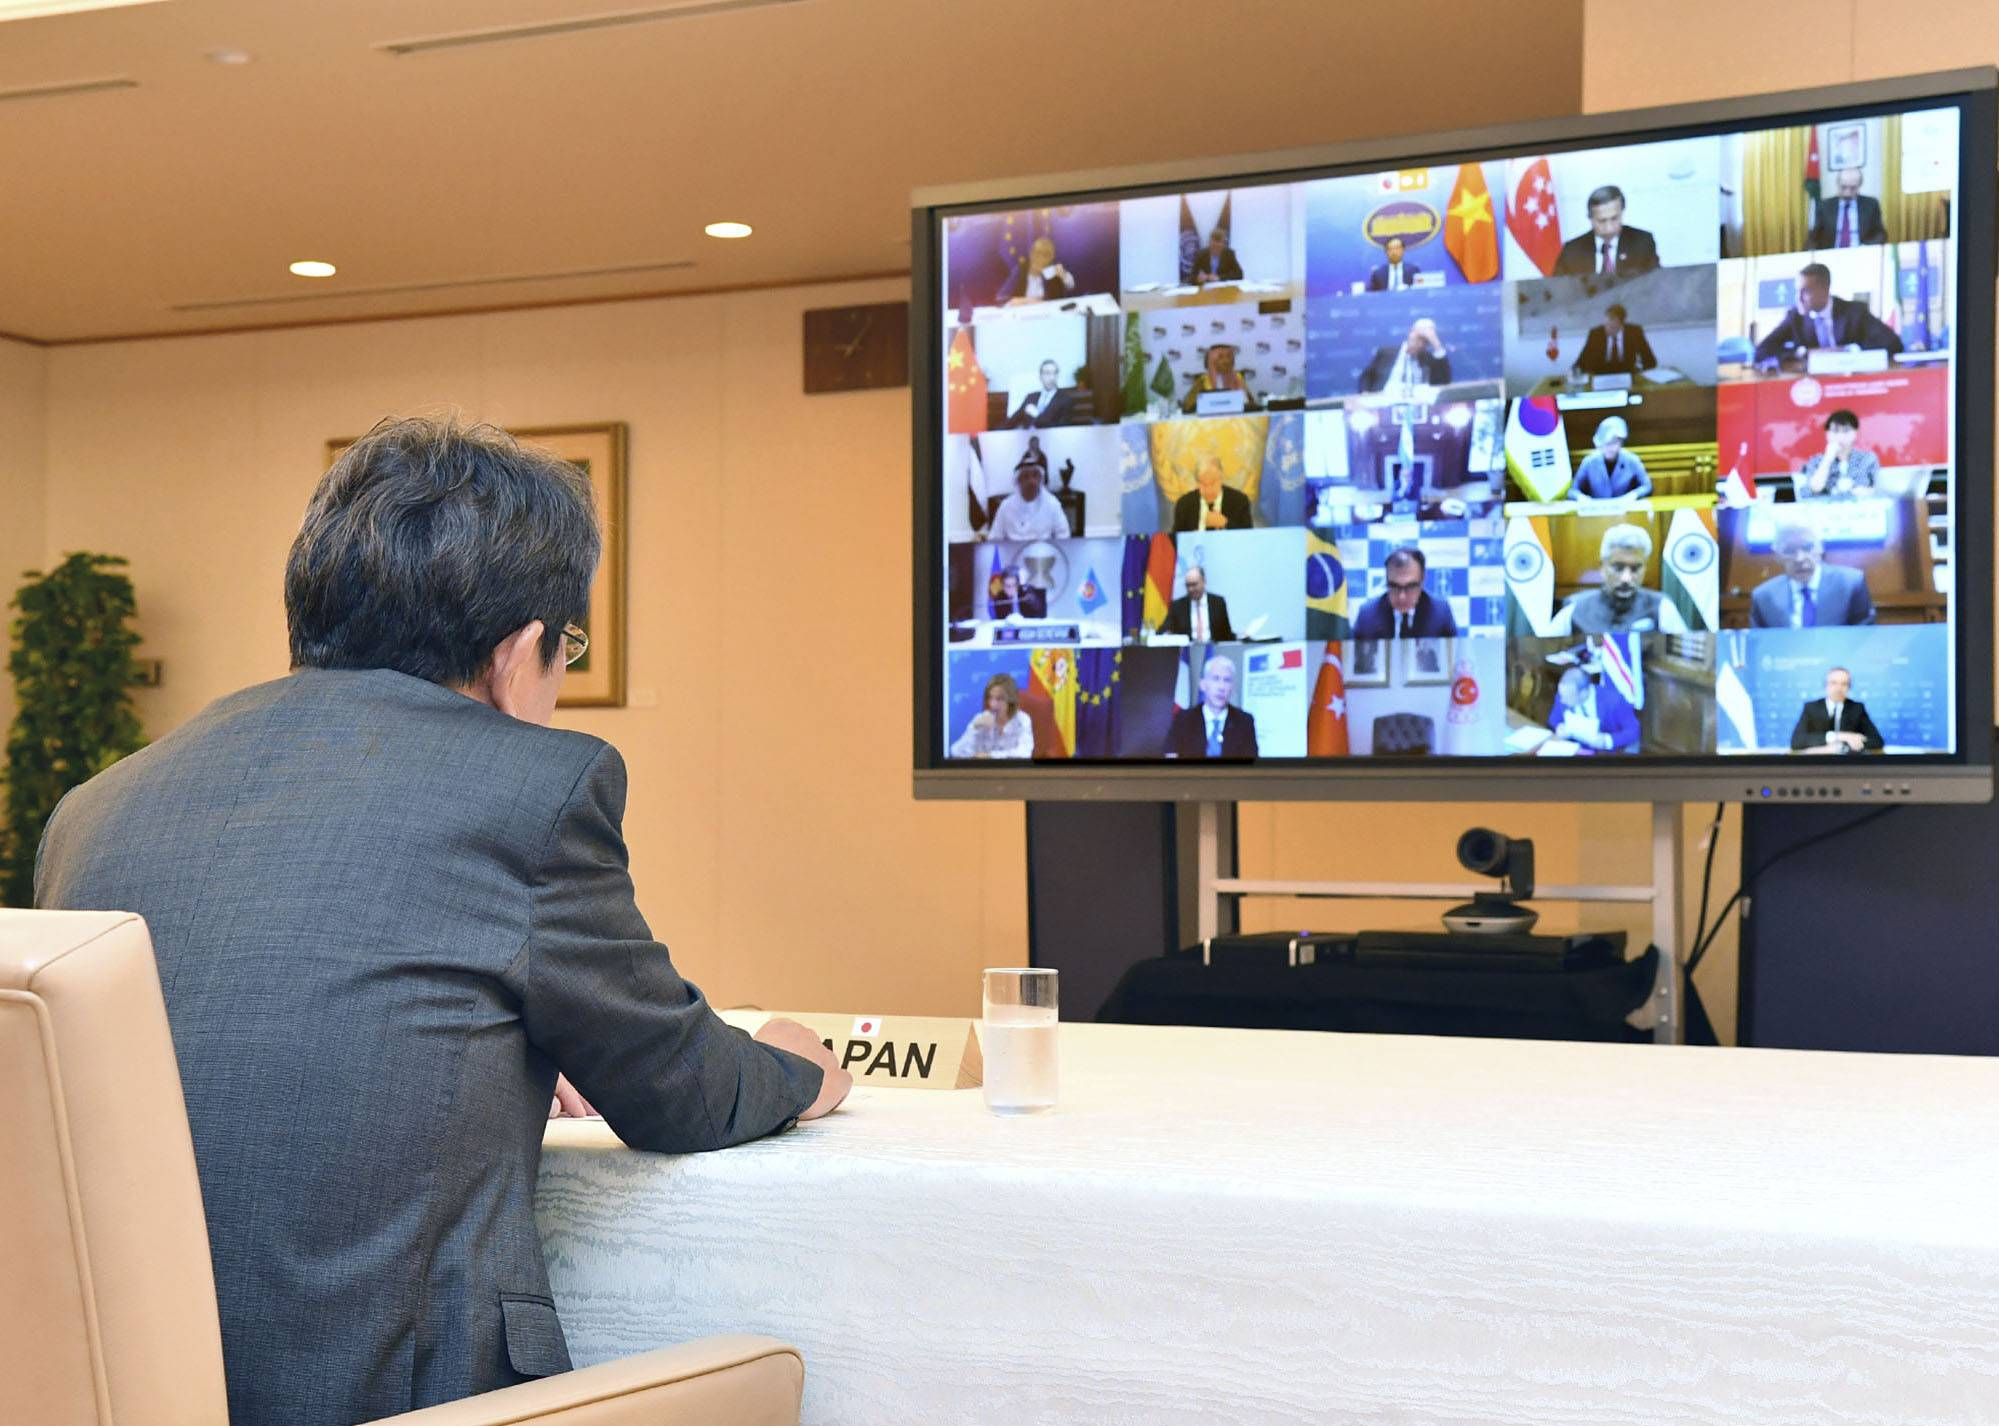 Foreign Minister Toshimitsu Motegi takes part in a teleconference of the foreign ministers of the Group of 20 major economies Friday. | FOREIGN MINISTRY / VIA KYODO